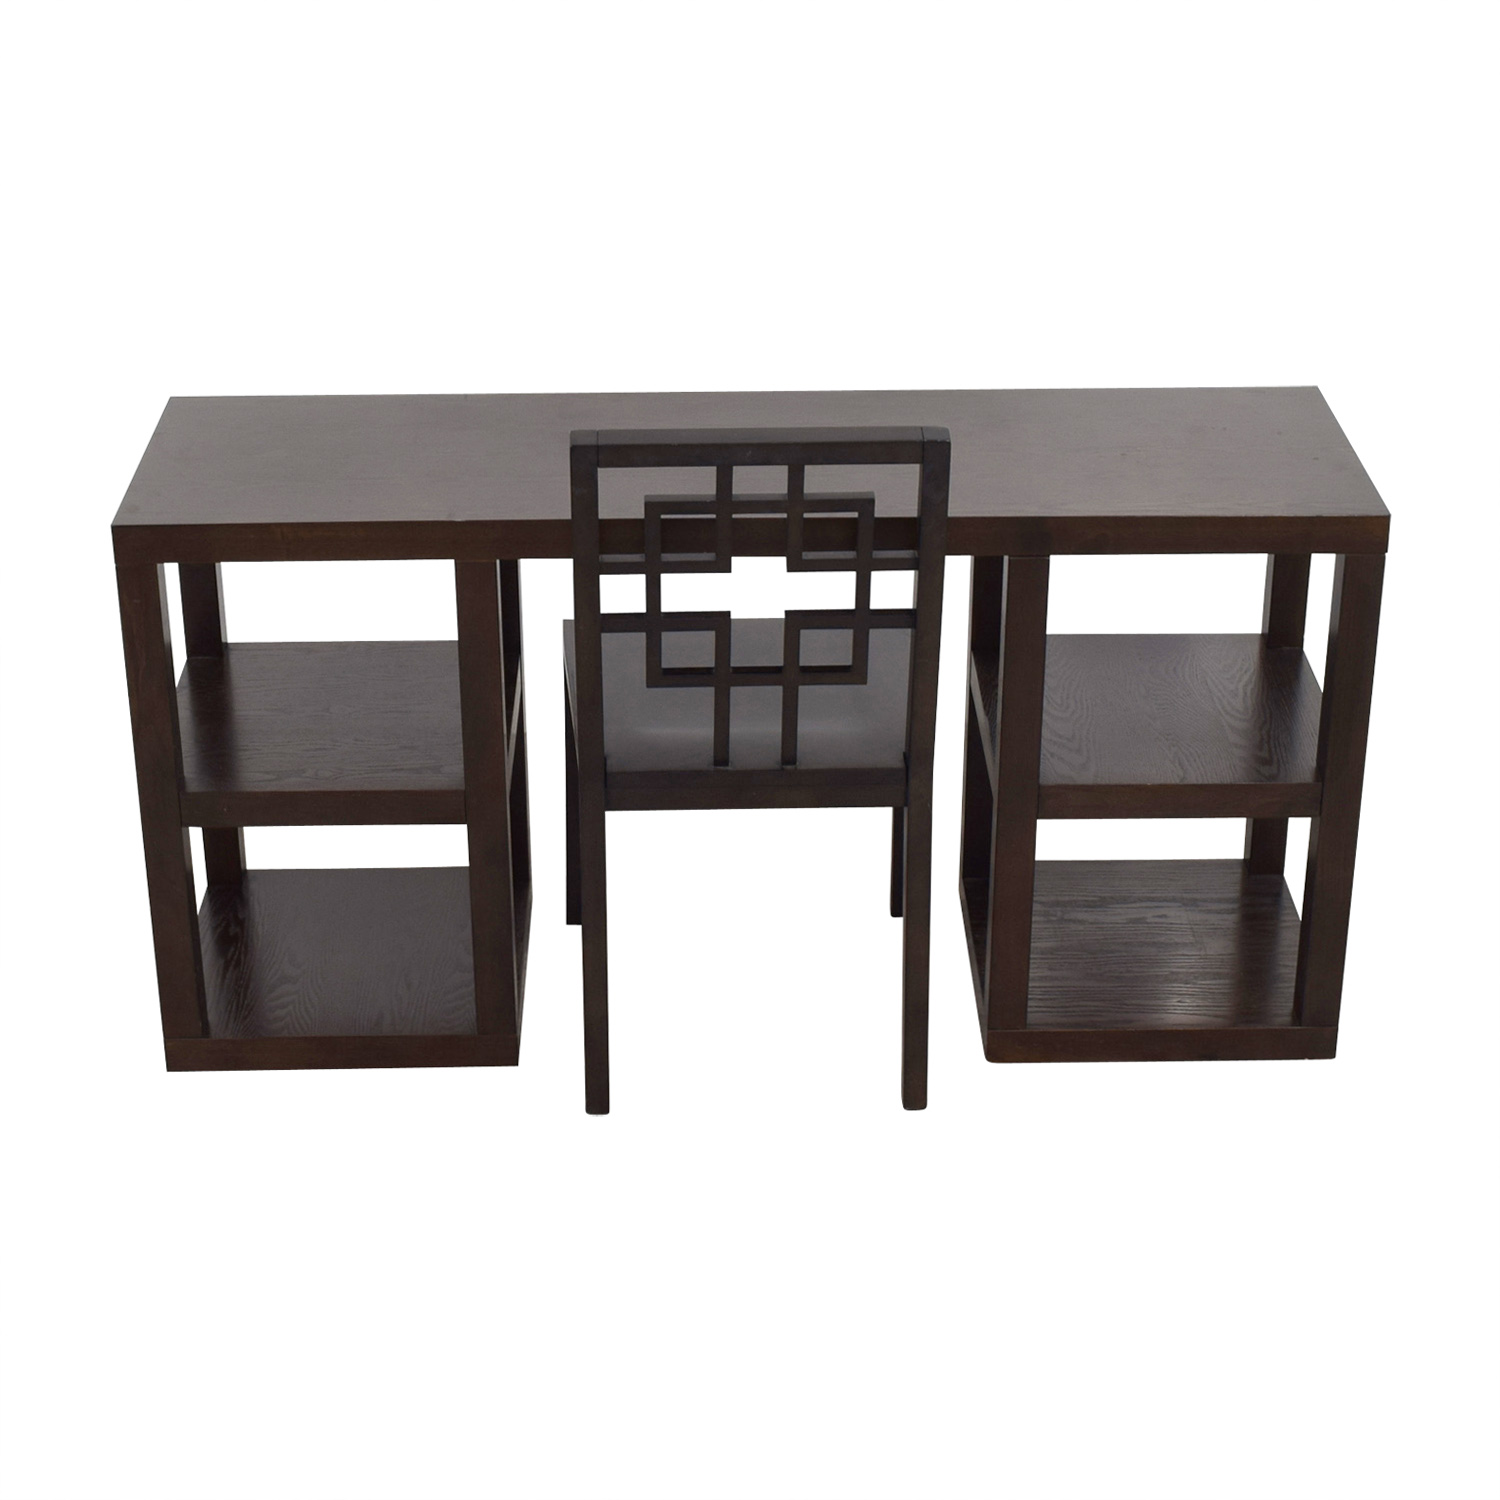 west elm desk chair office star chairs 64 off wood with shelves and